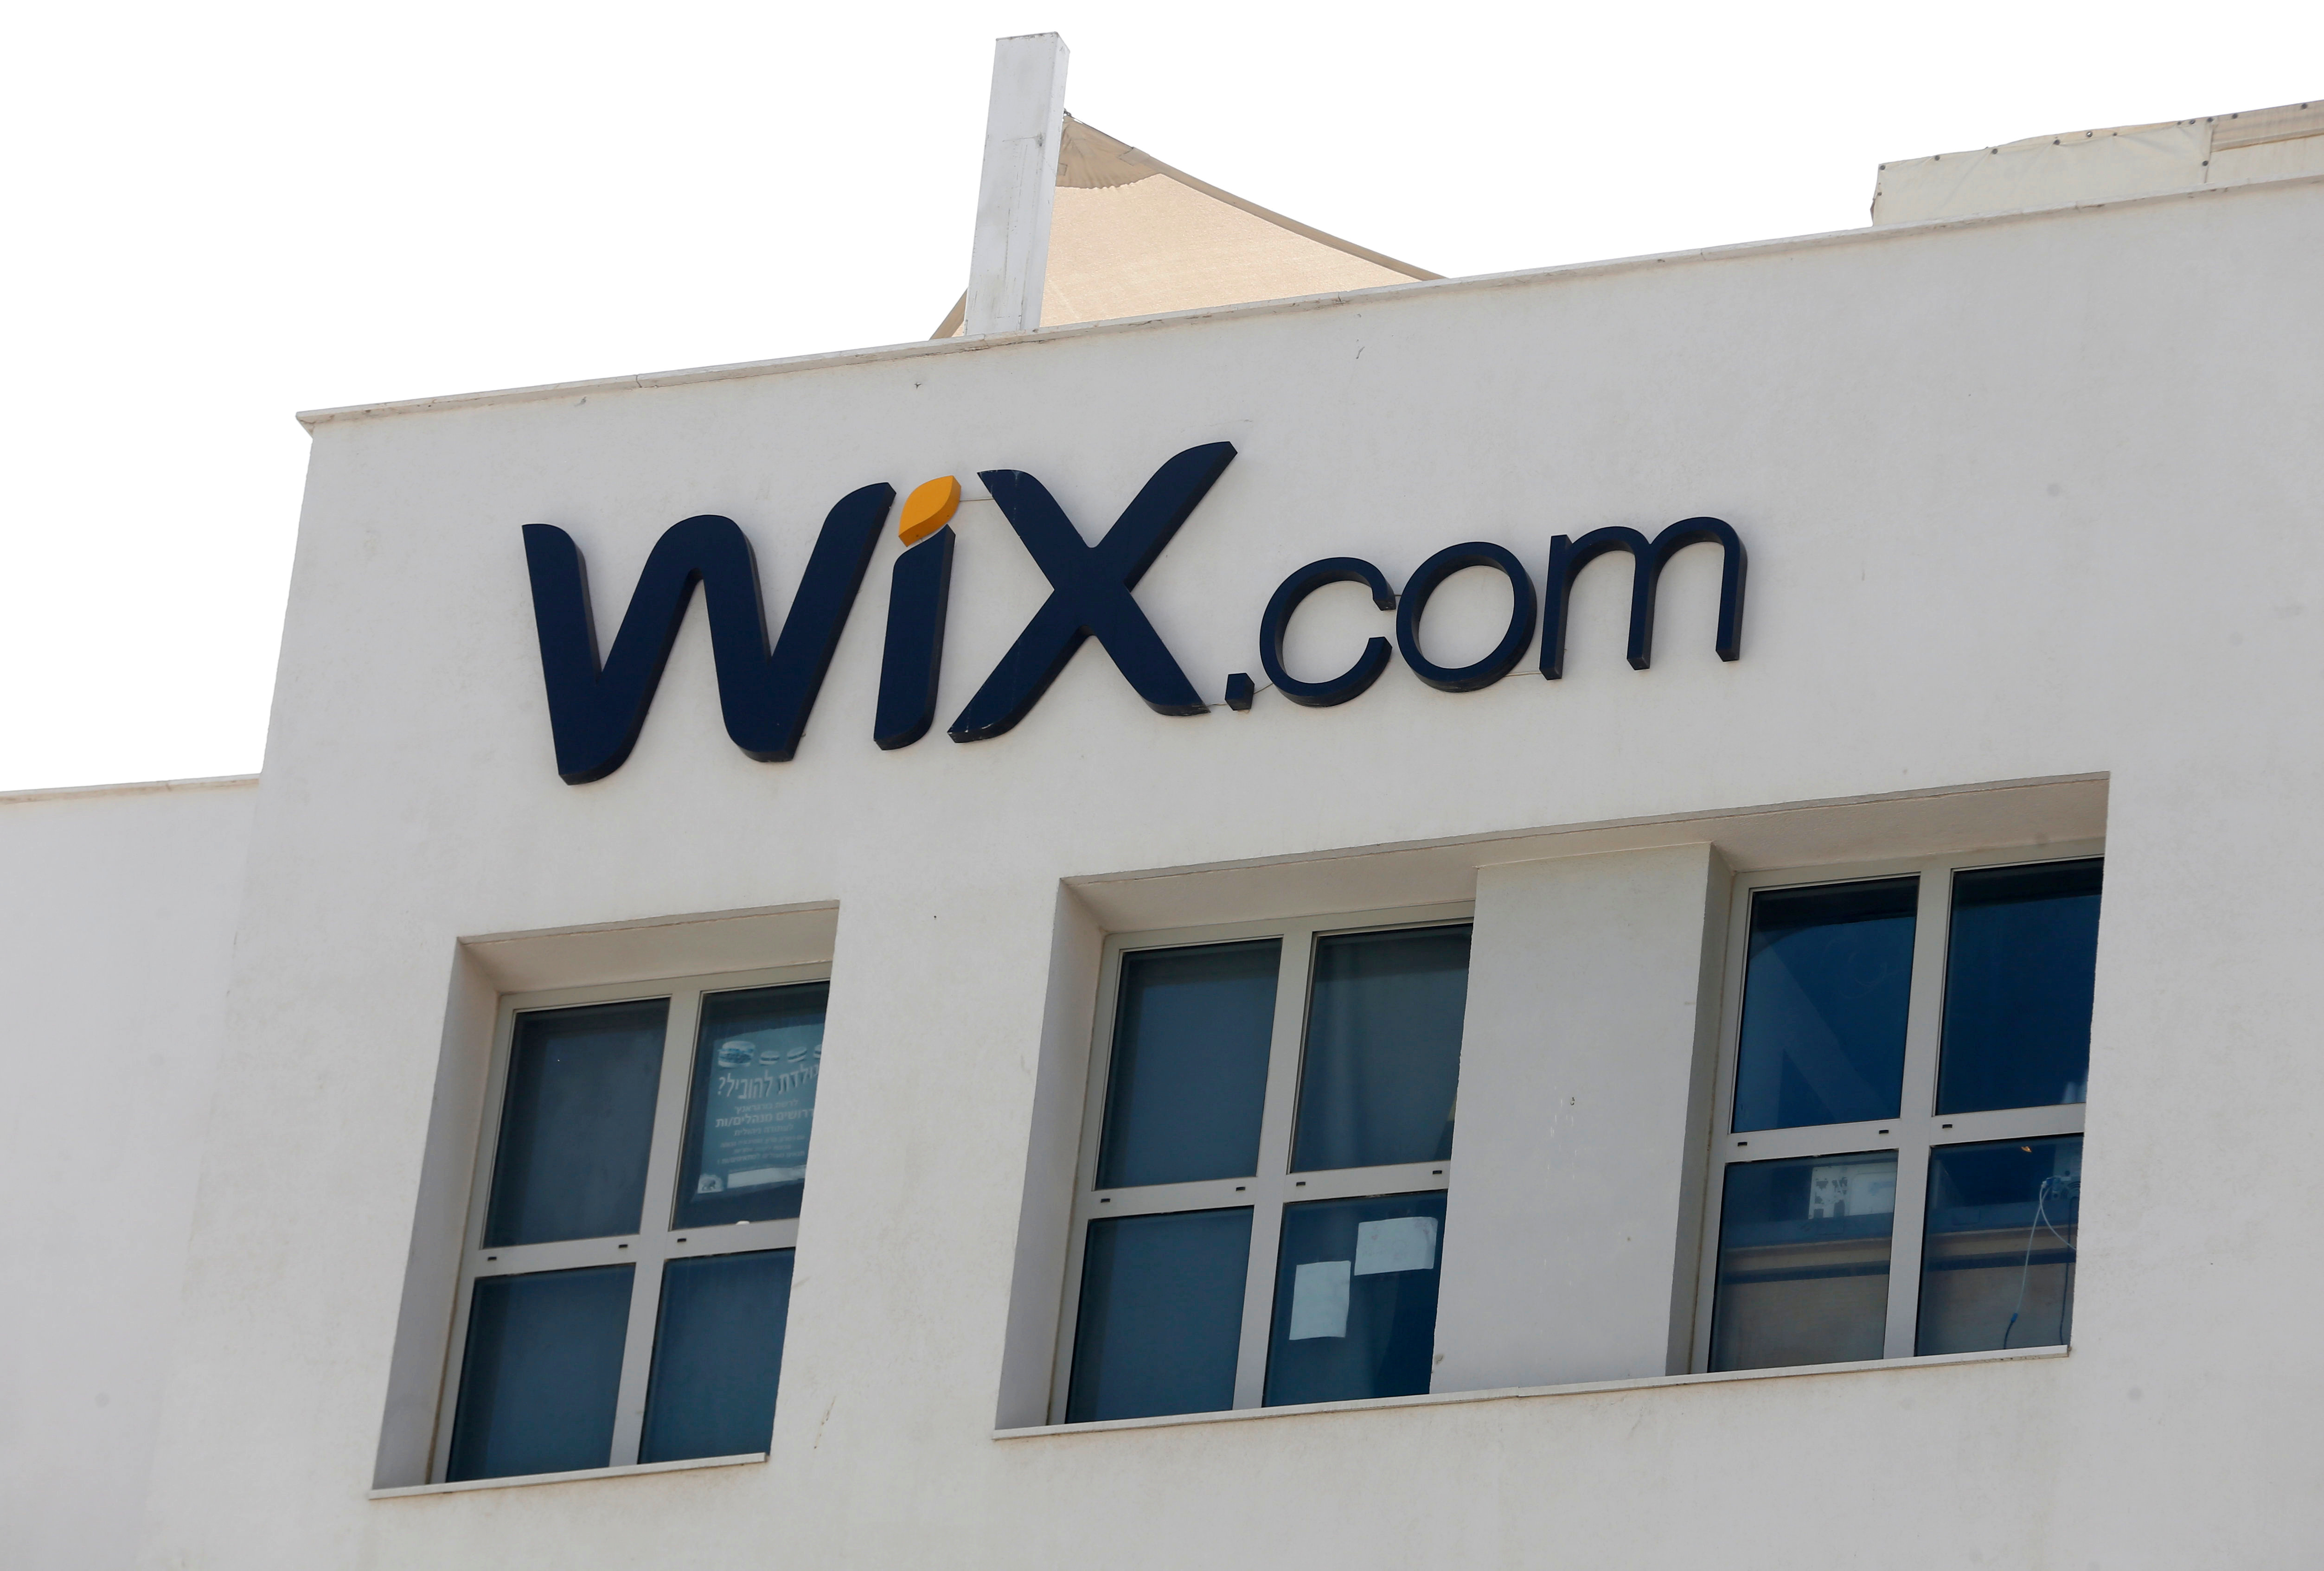 The offices website-designer firm Wix.com are shown in Tel Aviv, Israel July 4, 2016. Picture taken July 4, 2016. REUTERS/Baz Ratner/File Photo